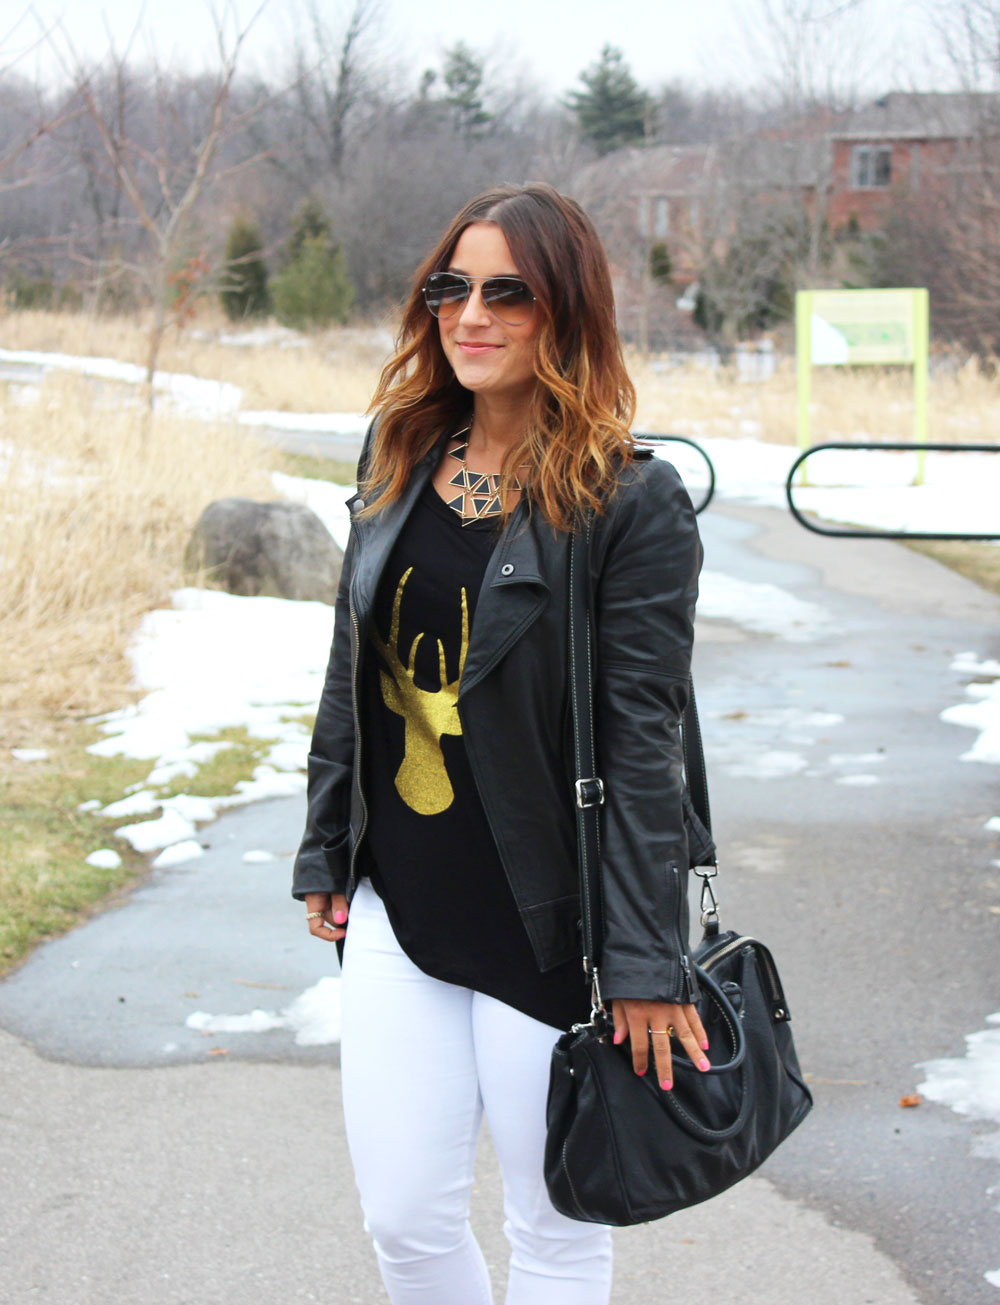 The Shopping Bag - Leather Jacket, White Jeans, Cute Graphic Tee